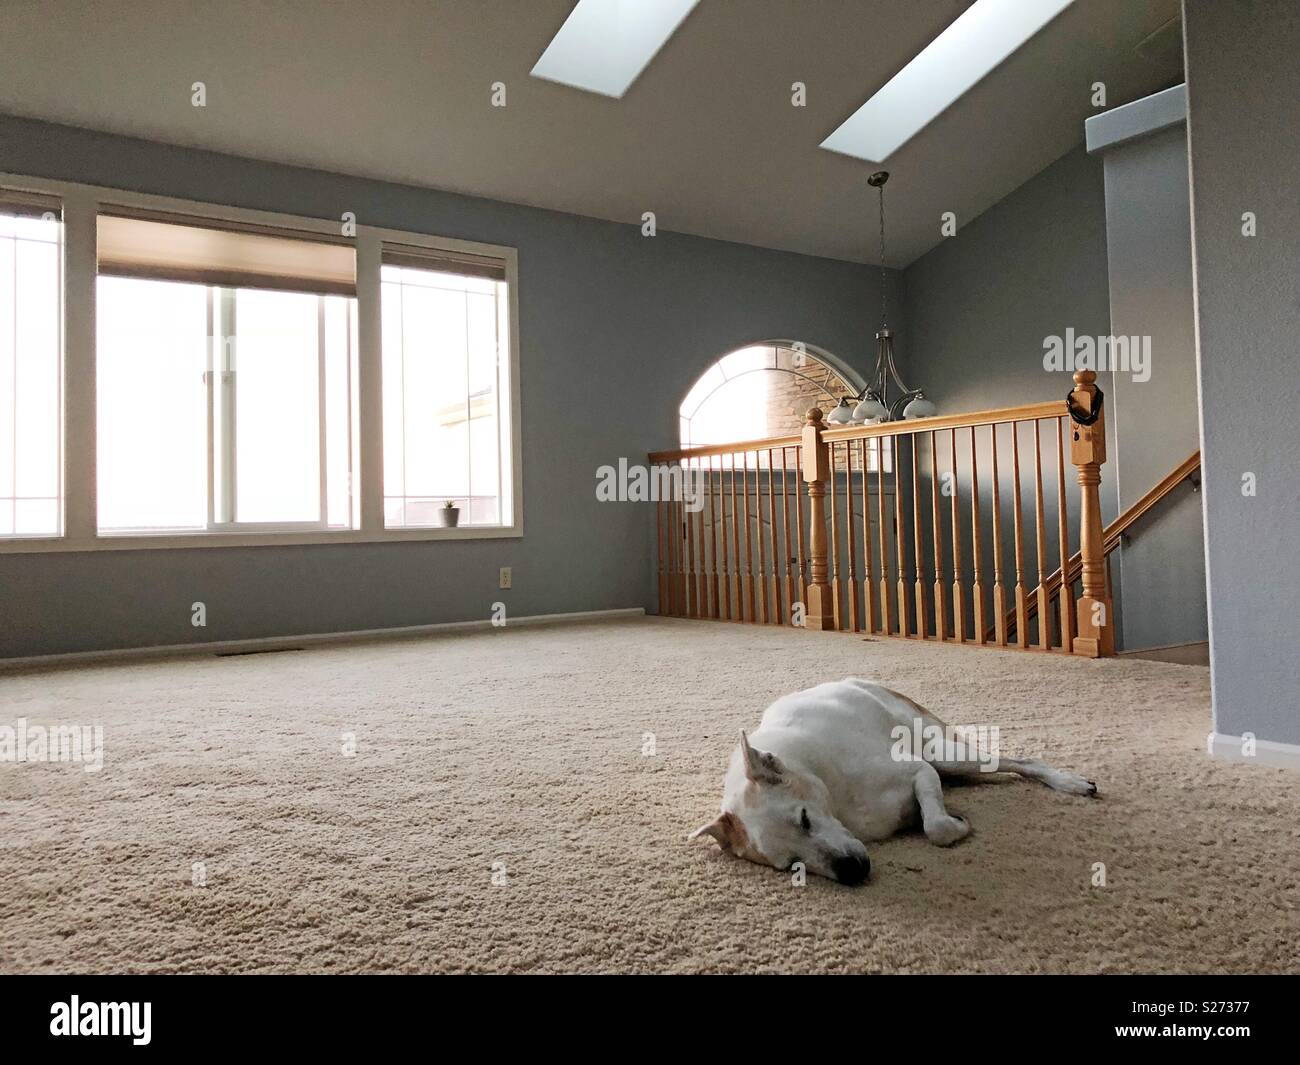 A dog sleeping in an empty house. - Stock Image